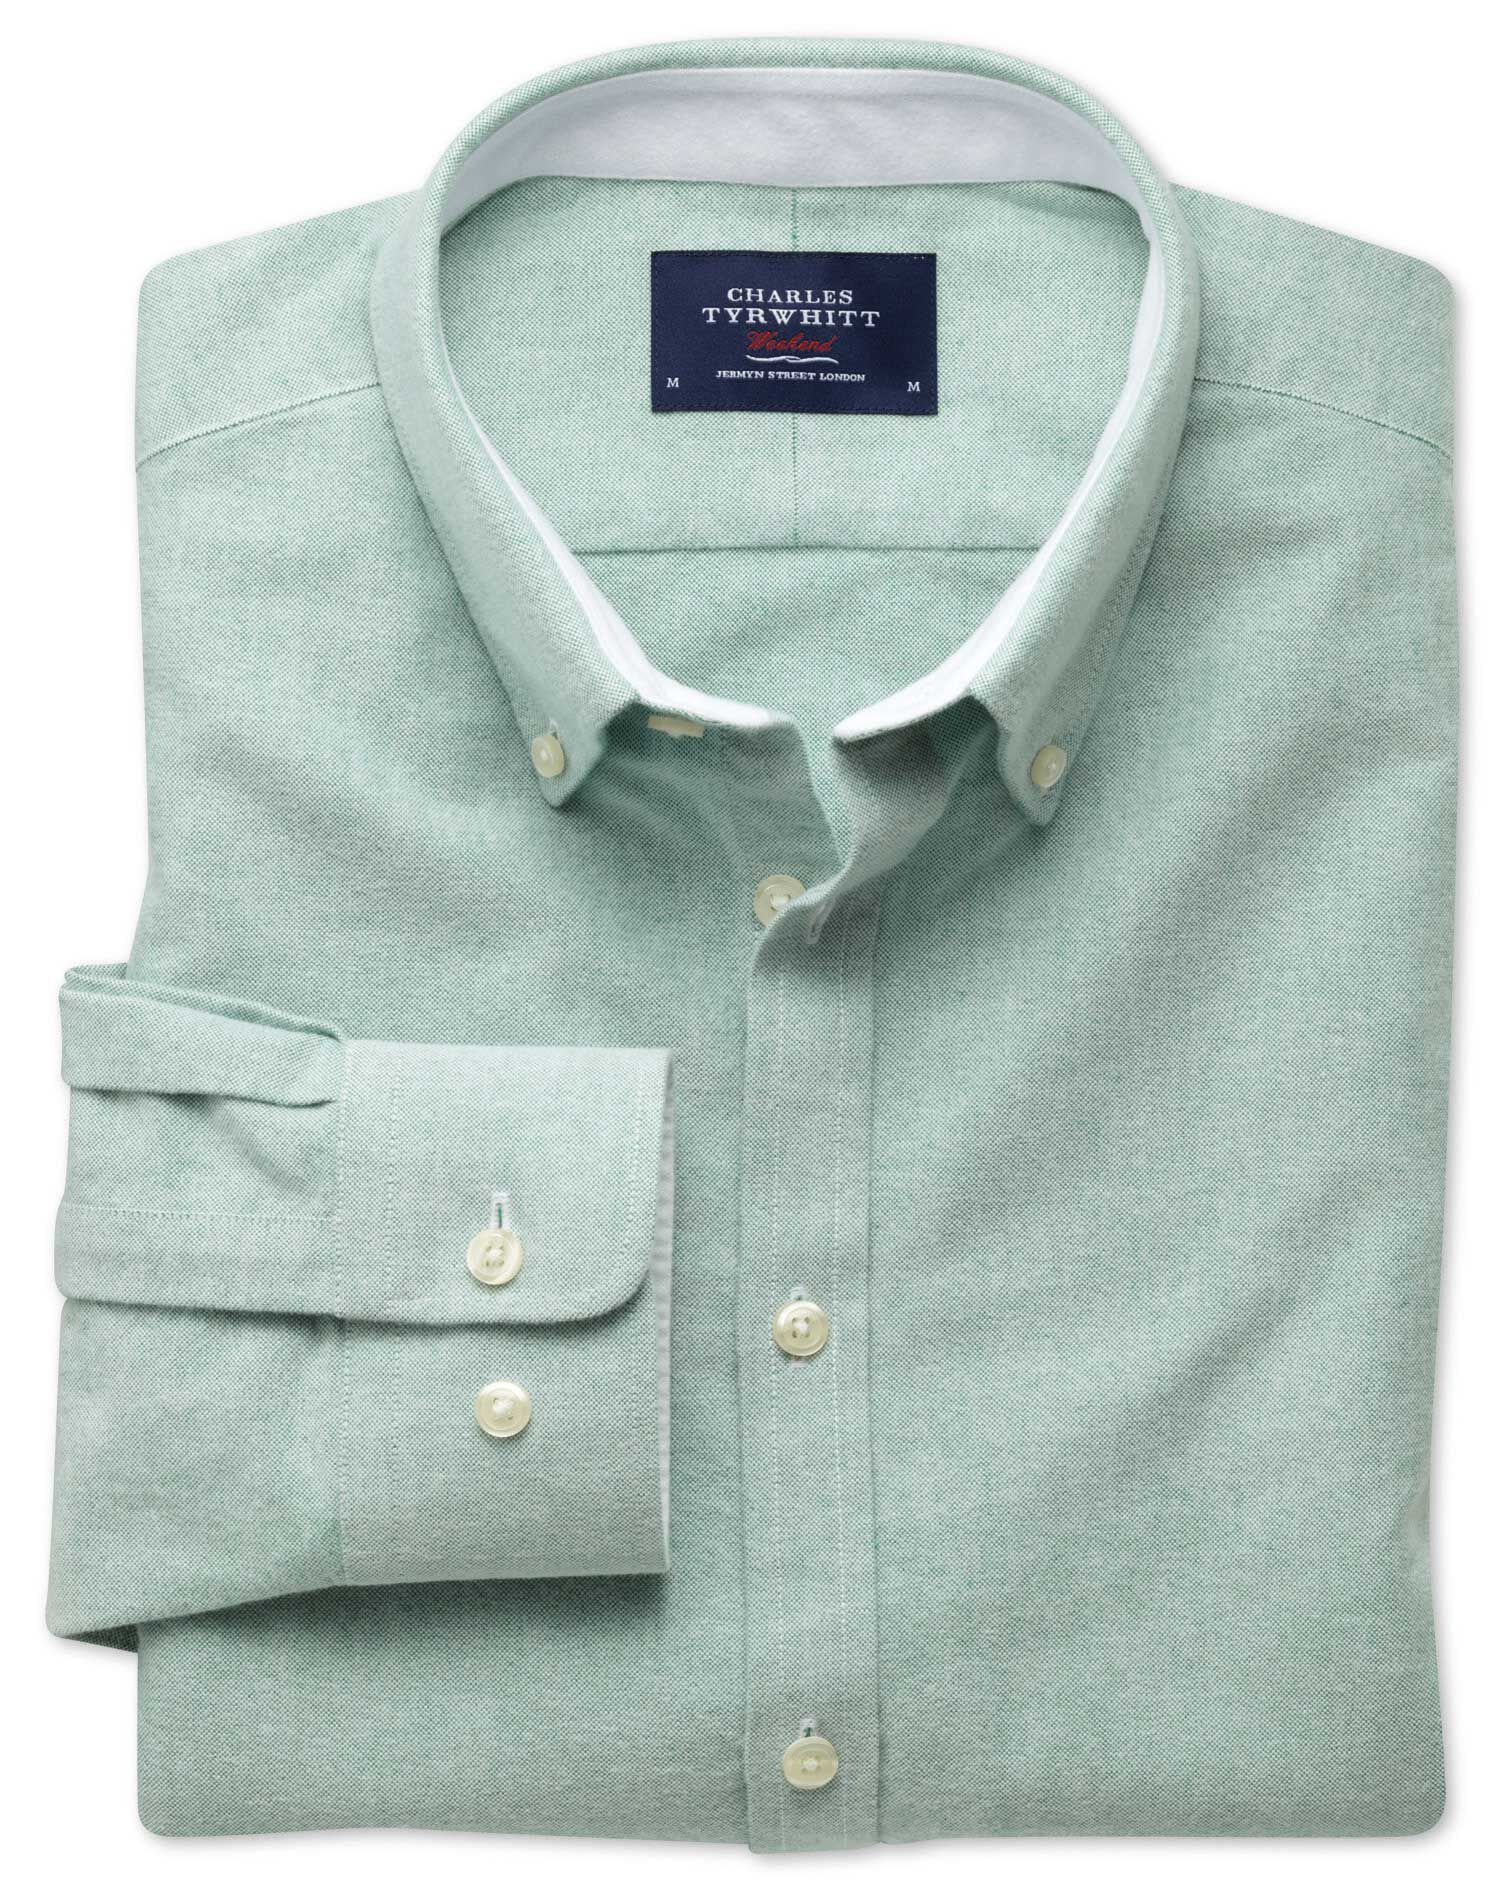 Extra Slim Fit Green Washed Oxford Cotton Shirt Single Cuff Size Medium by Charles Tyrwhitt